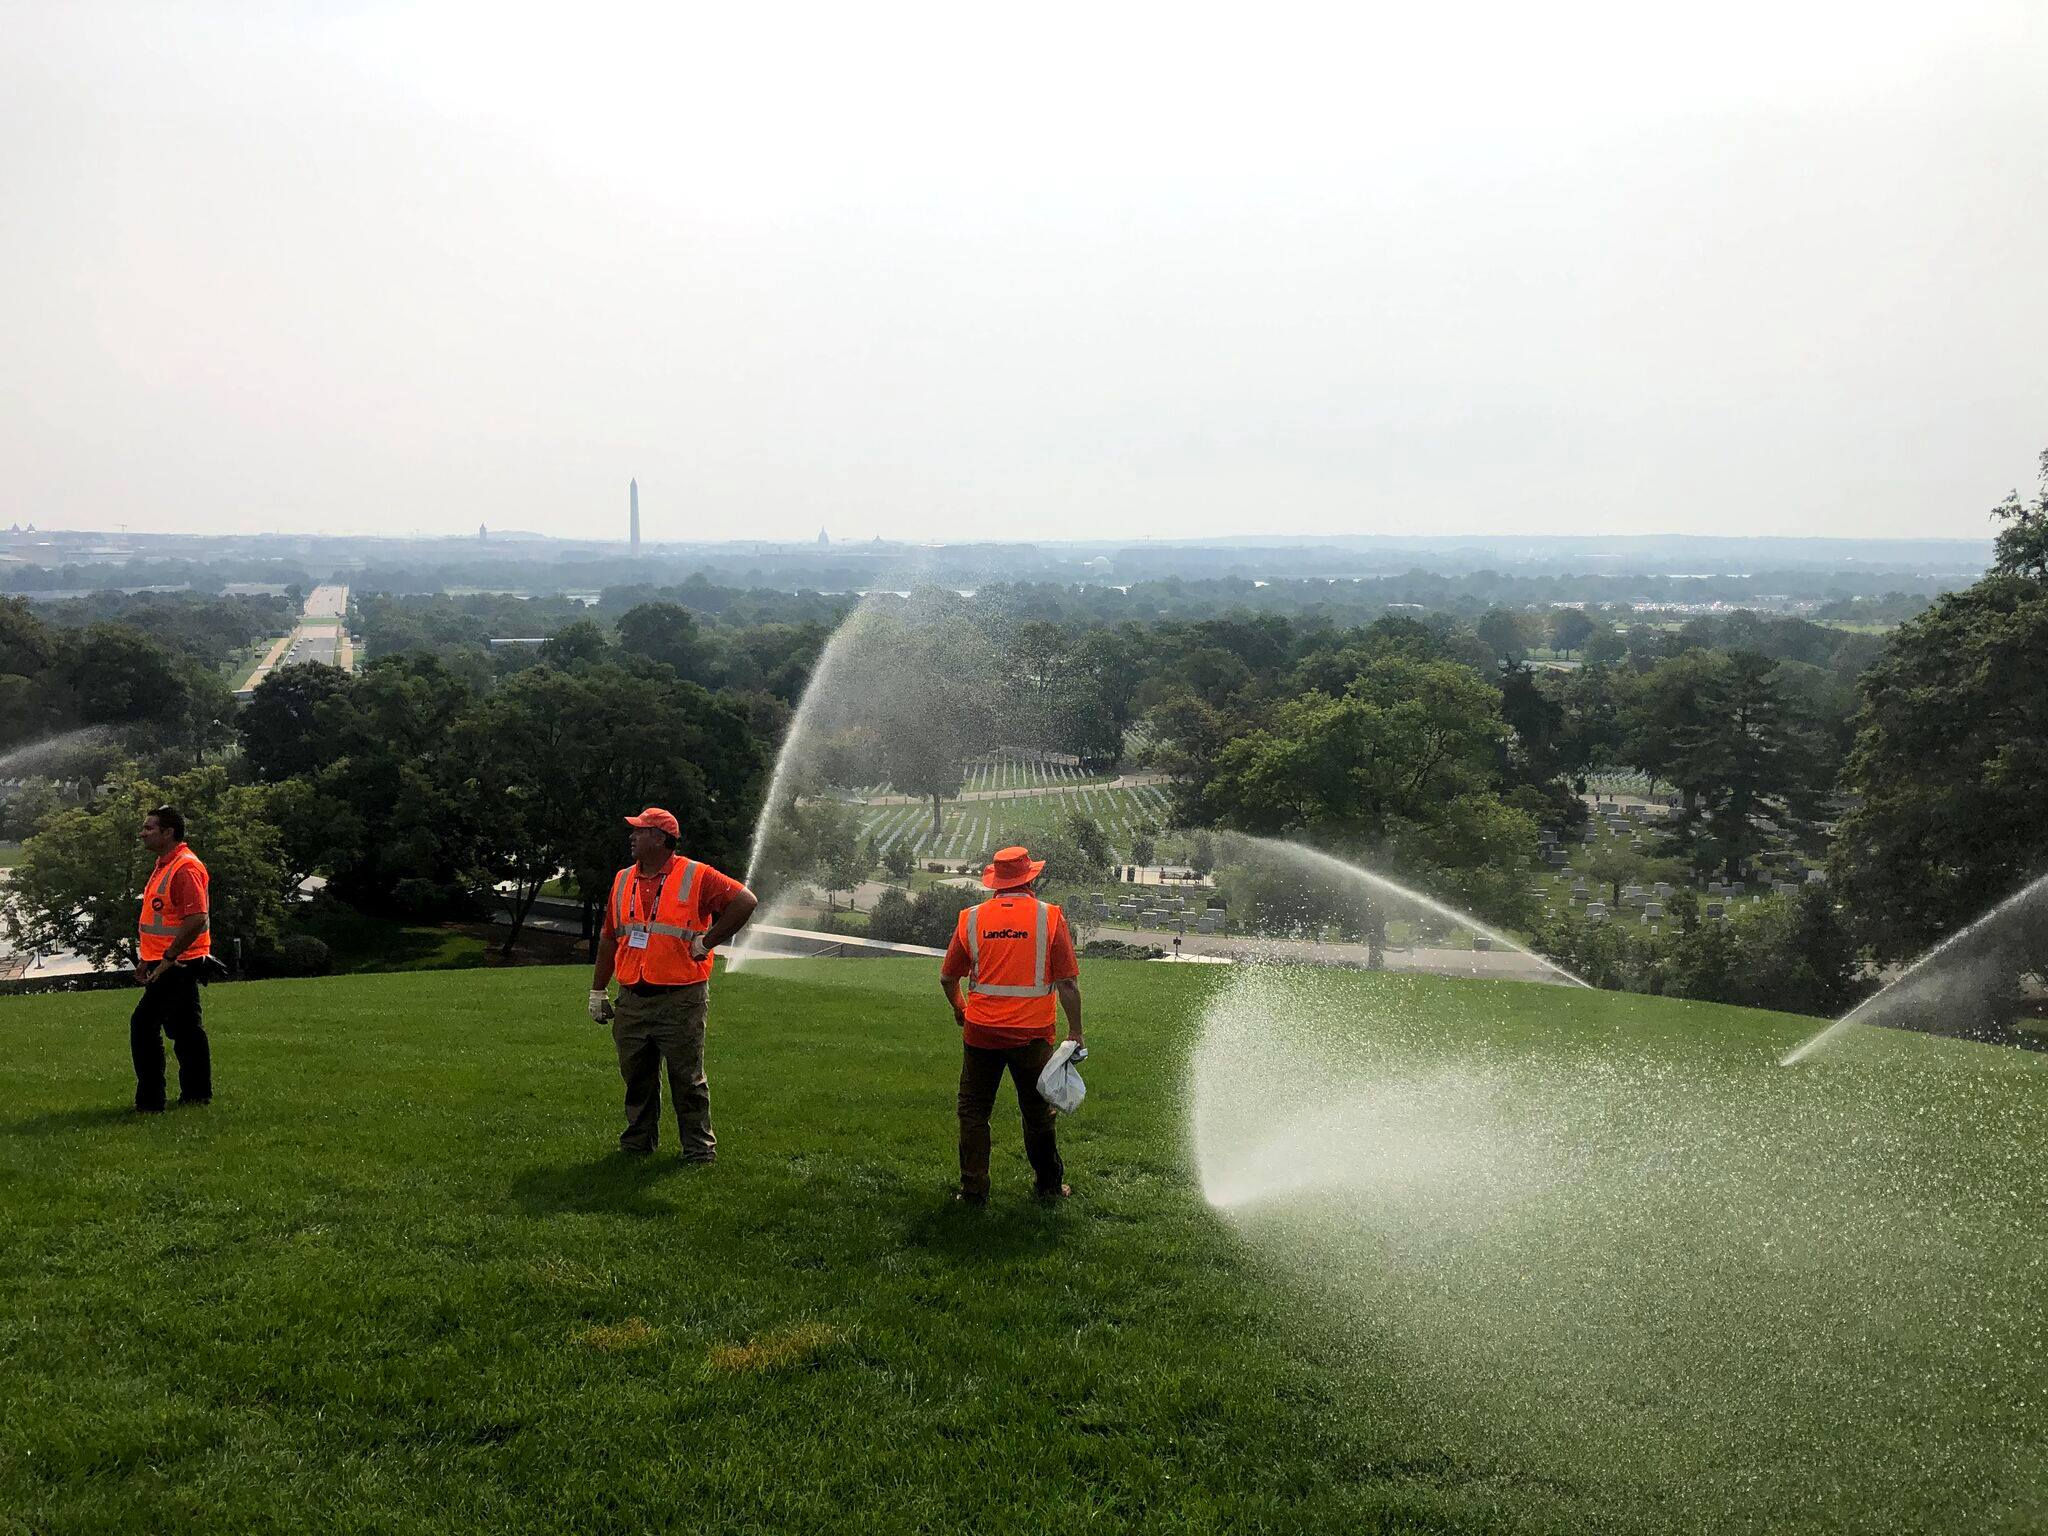 LandCare helps restore Arlington National Cemetery as part of Renewal & Remembrance event